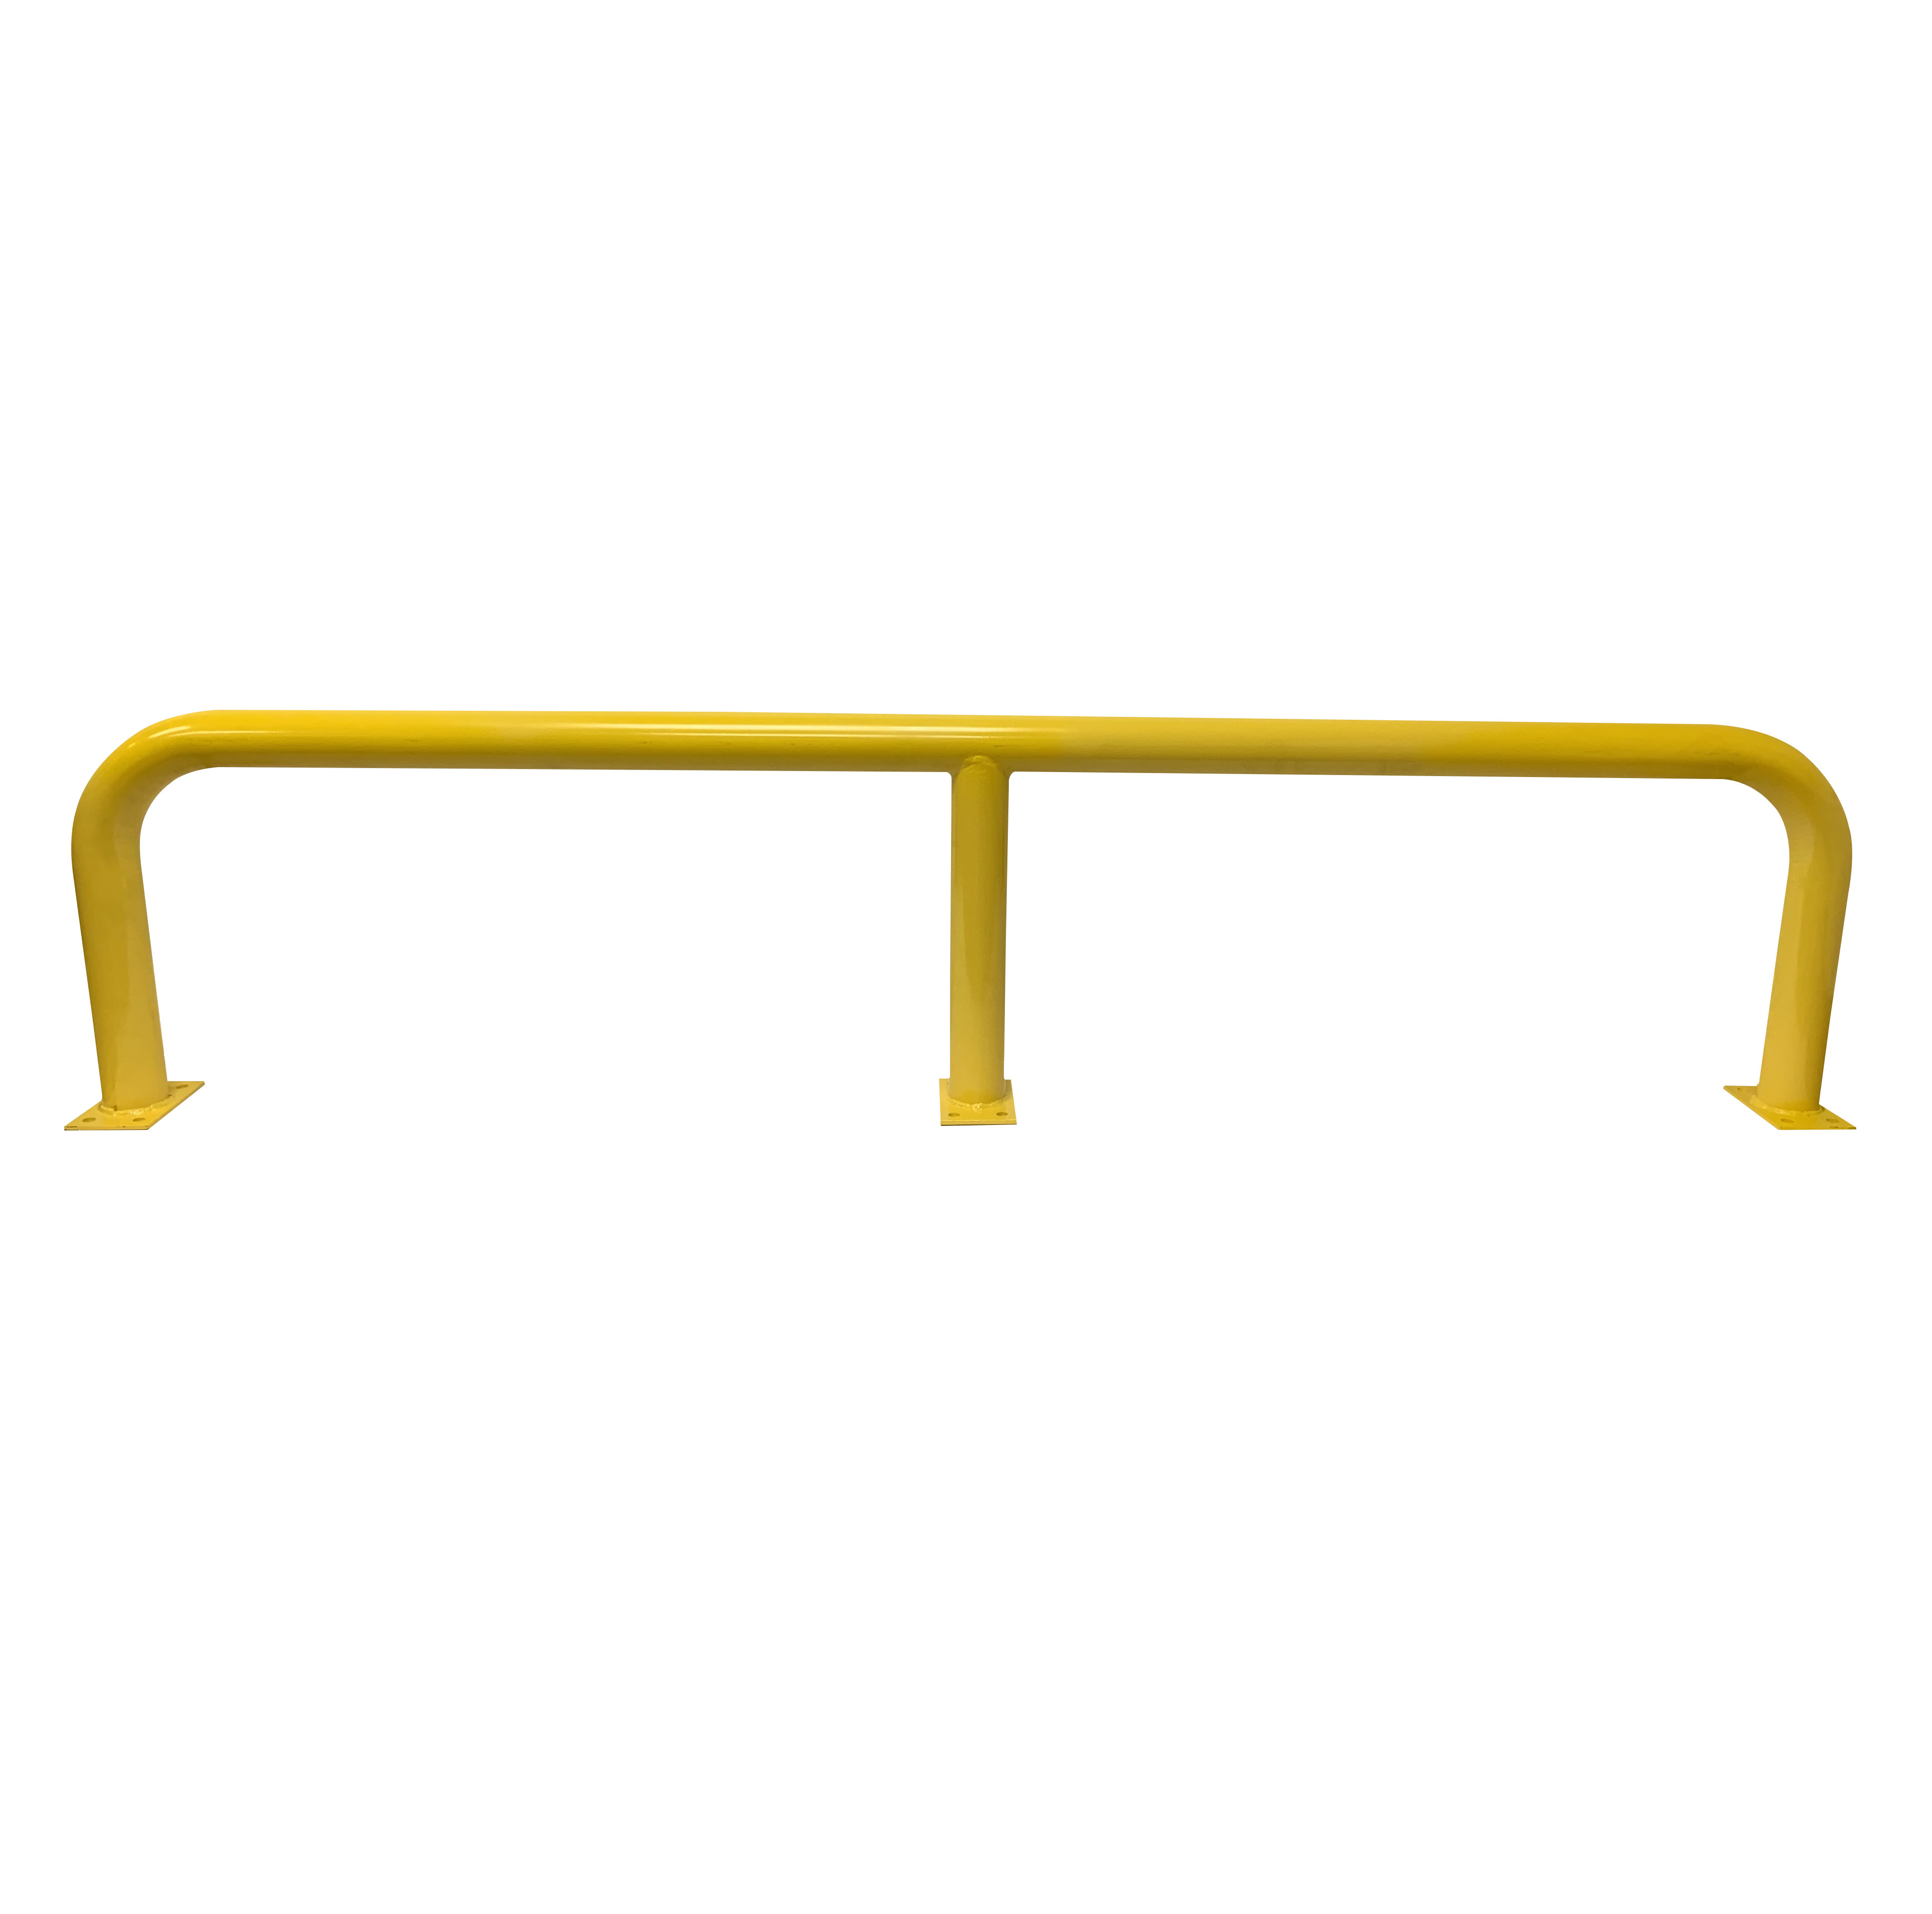 Barrier Protector - 500mm High x 2200mm Wide - 76mm Tube Yellow